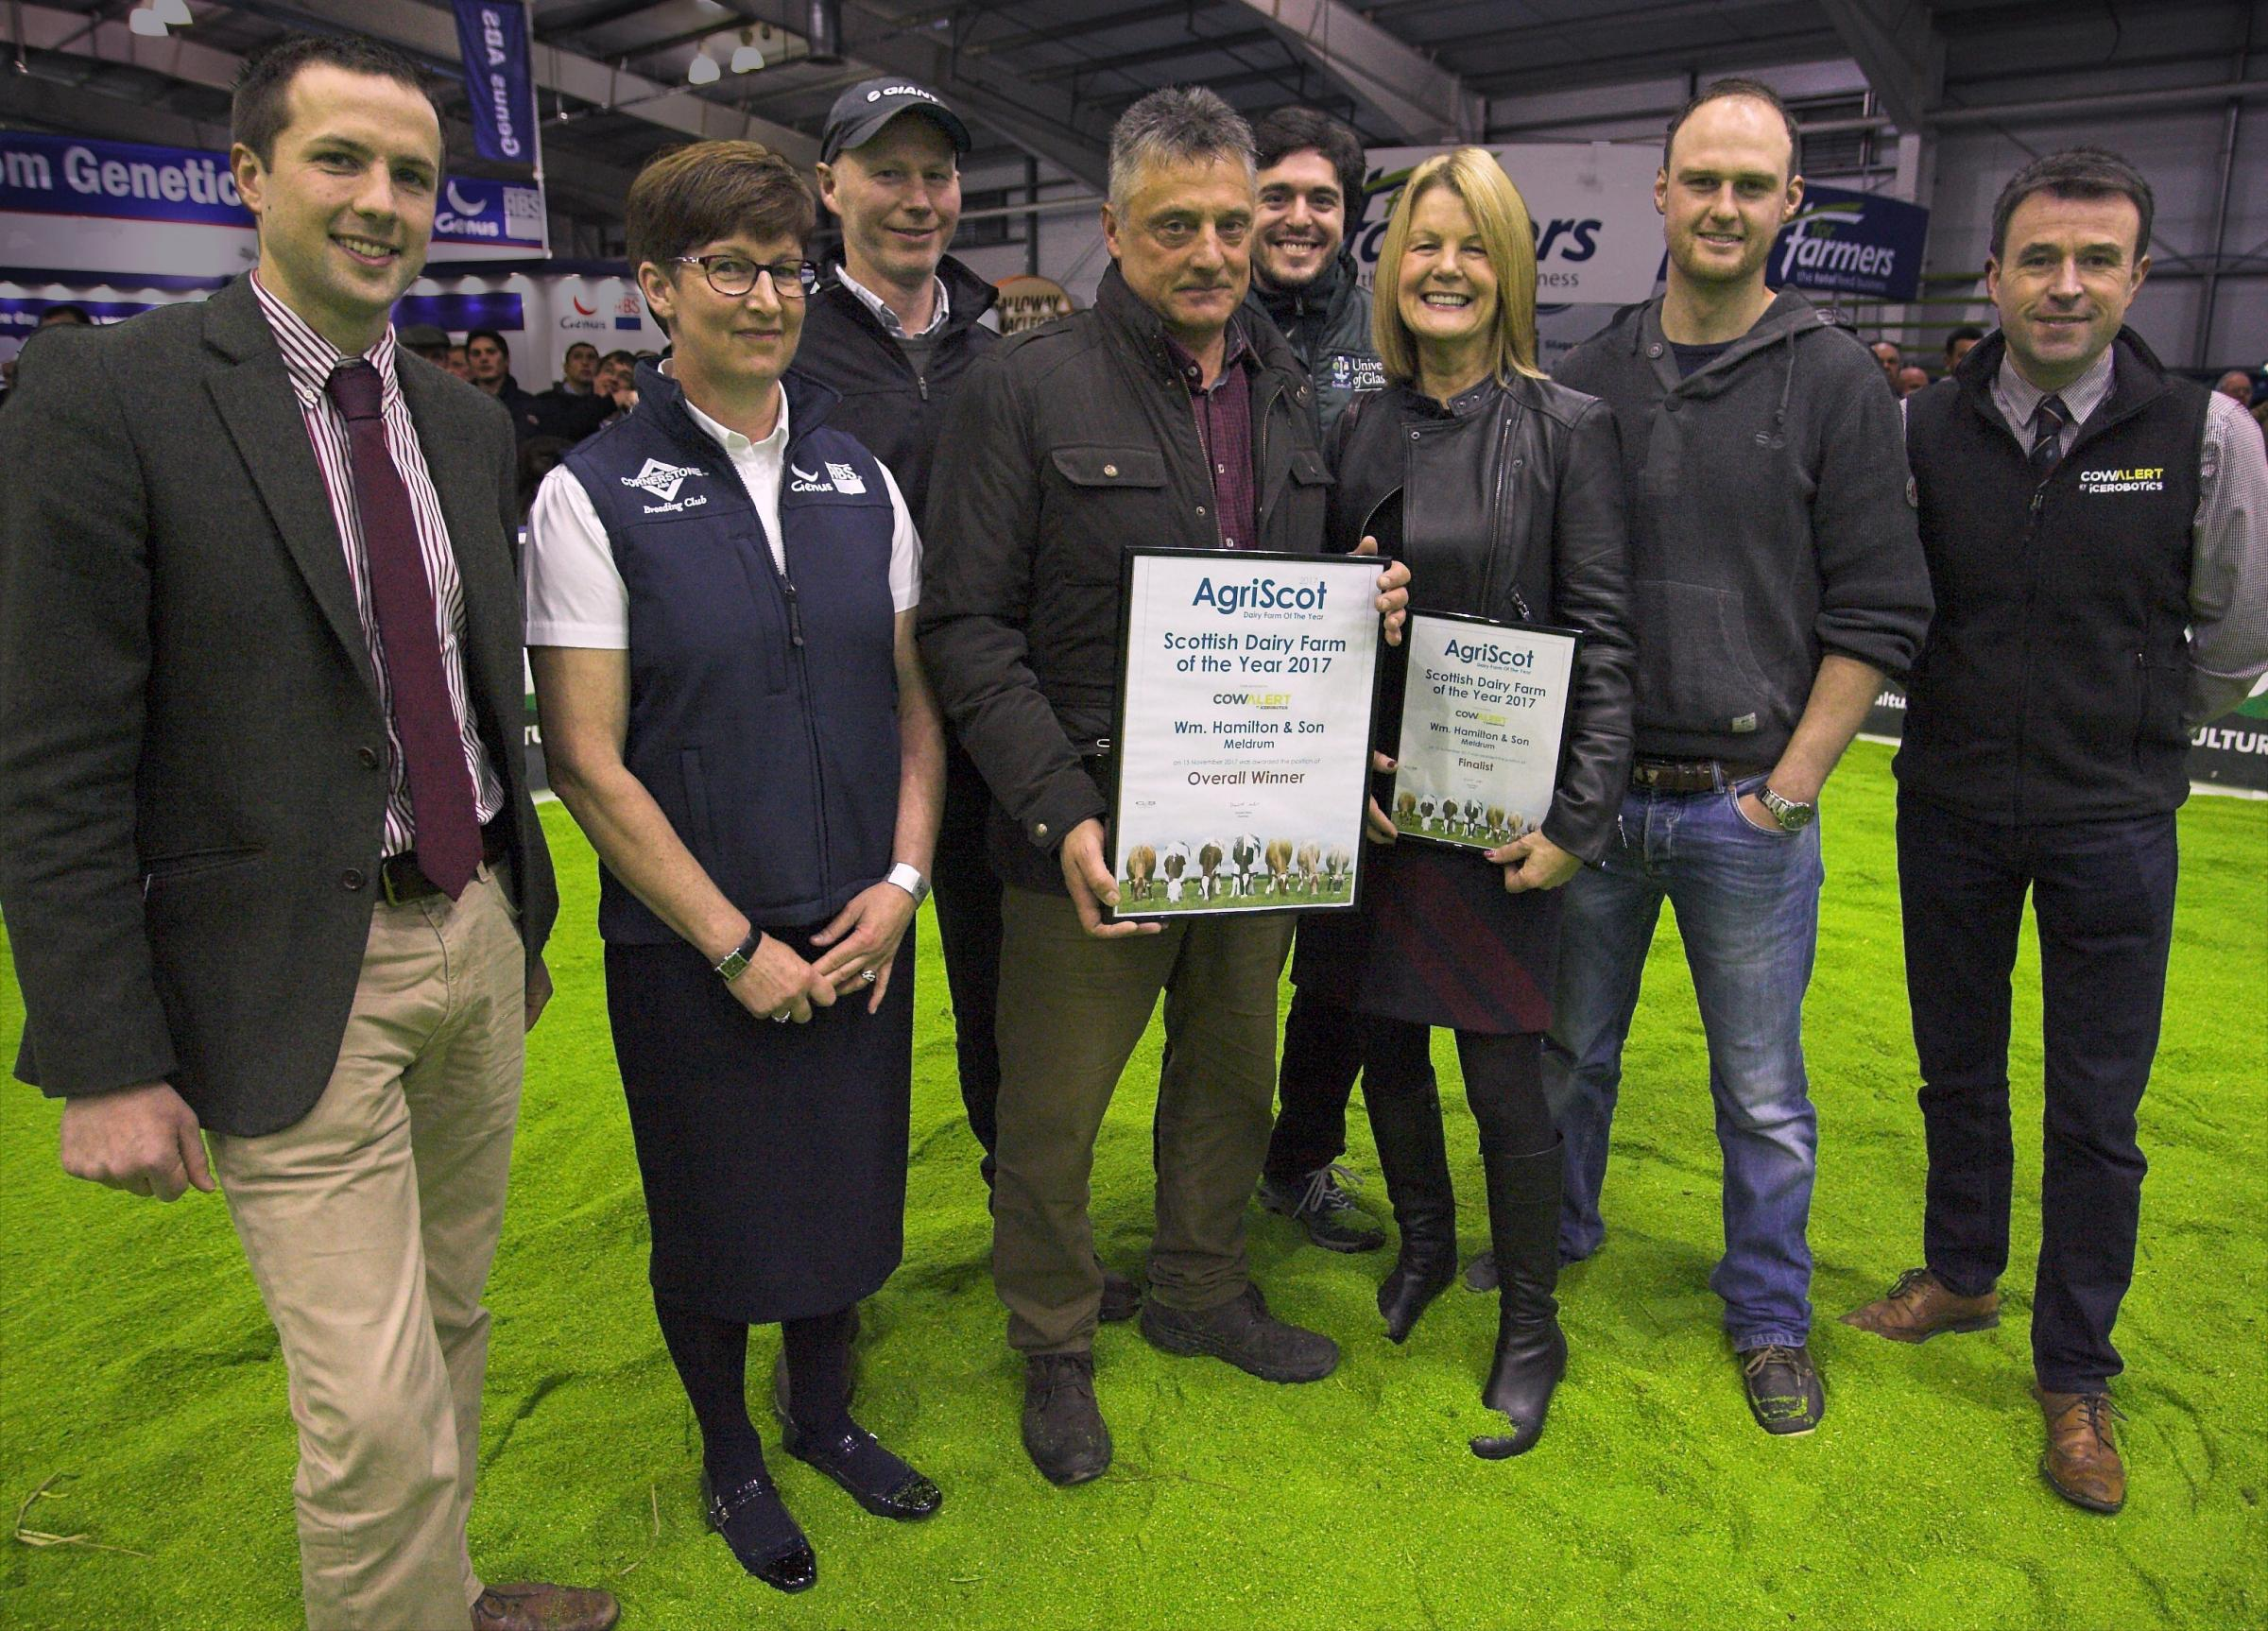 Stirlingshire's Meldrum Farm was the recipient of the 2017 Scottish Dairy Farm of the Year title